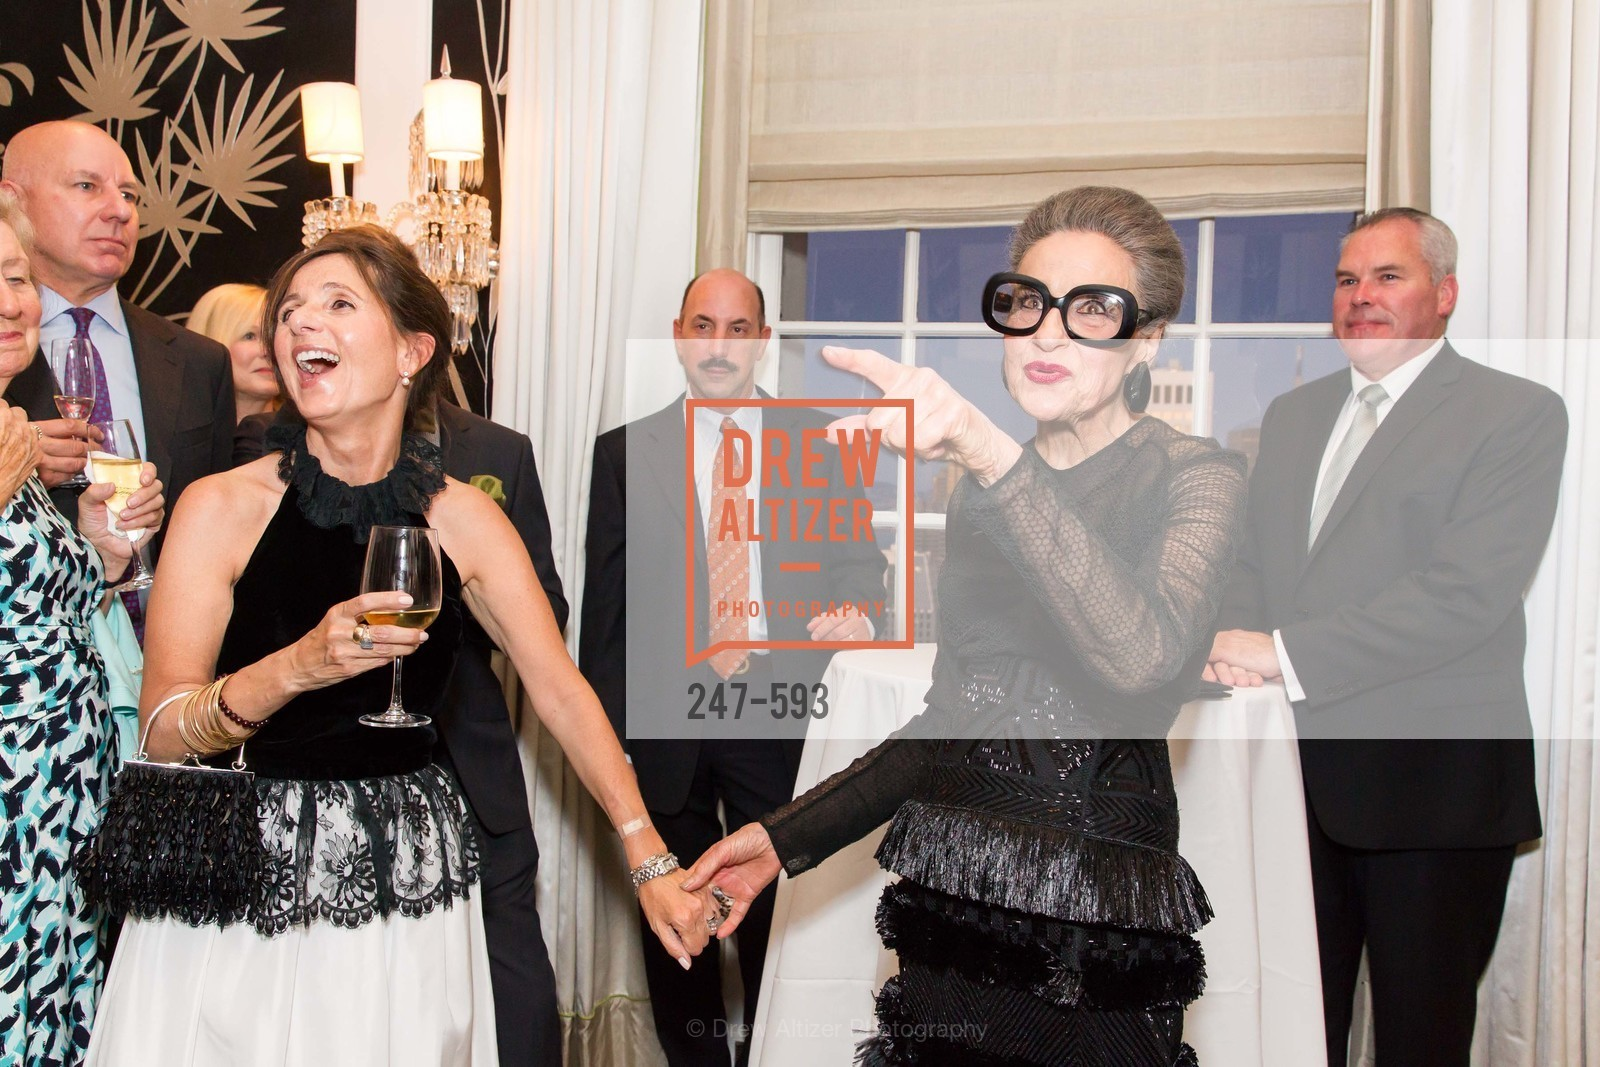 Maria Martinez, Joy Venturini Bianchi, COUTURE FOR A CAUSE, US, October 5th, 2014,Drew Altizer, Drew Altizer Photography, full-service agency, private events, San Francisco photographer, photographer california